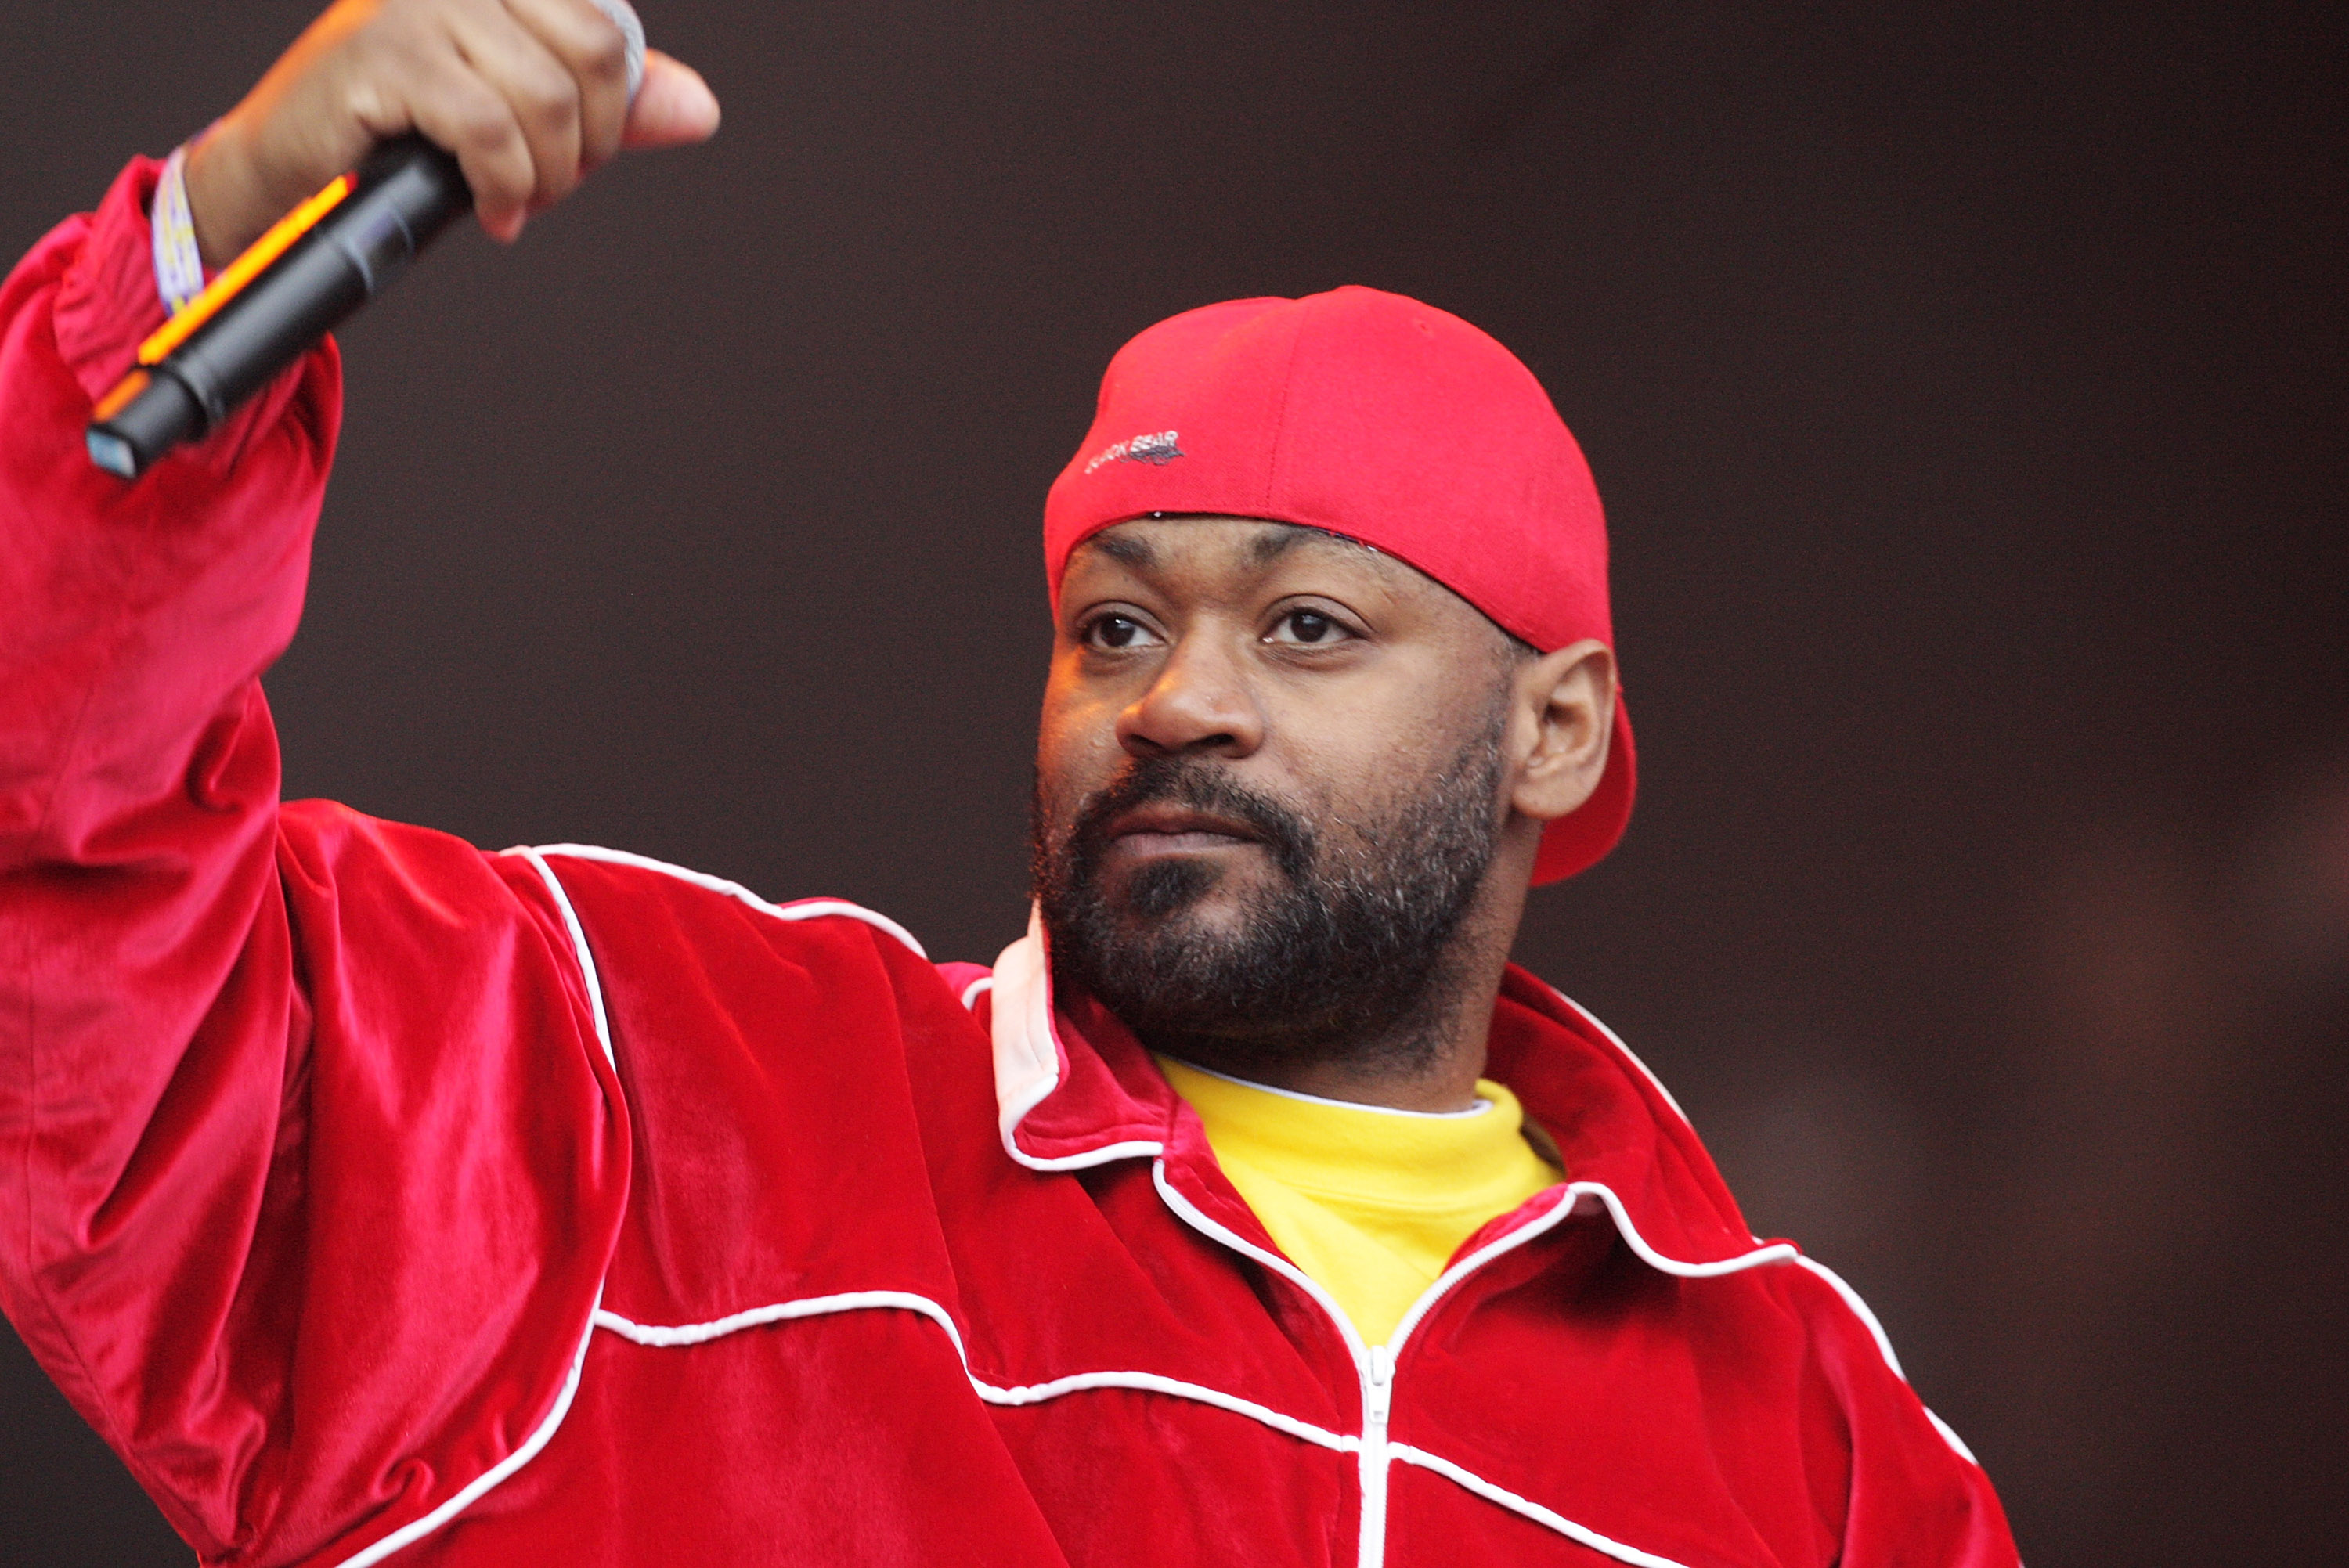 GLASTONBURY, ENGLAND - JUNE 24:  Ghostface Killah of The Wu-Tang Clan performs at the Glastonbury Festival at Worthy Farm, Pilton on June 24, 2011 in Glastonbury, England. The festival, which started in 1970 when several hundred hippies paid 1 GBP to watch Marc Bolan, has grown into Europe's largest music festival attracting more than 175,000 people over five days.  (Photo by Fergus McDonald/Getty Images)